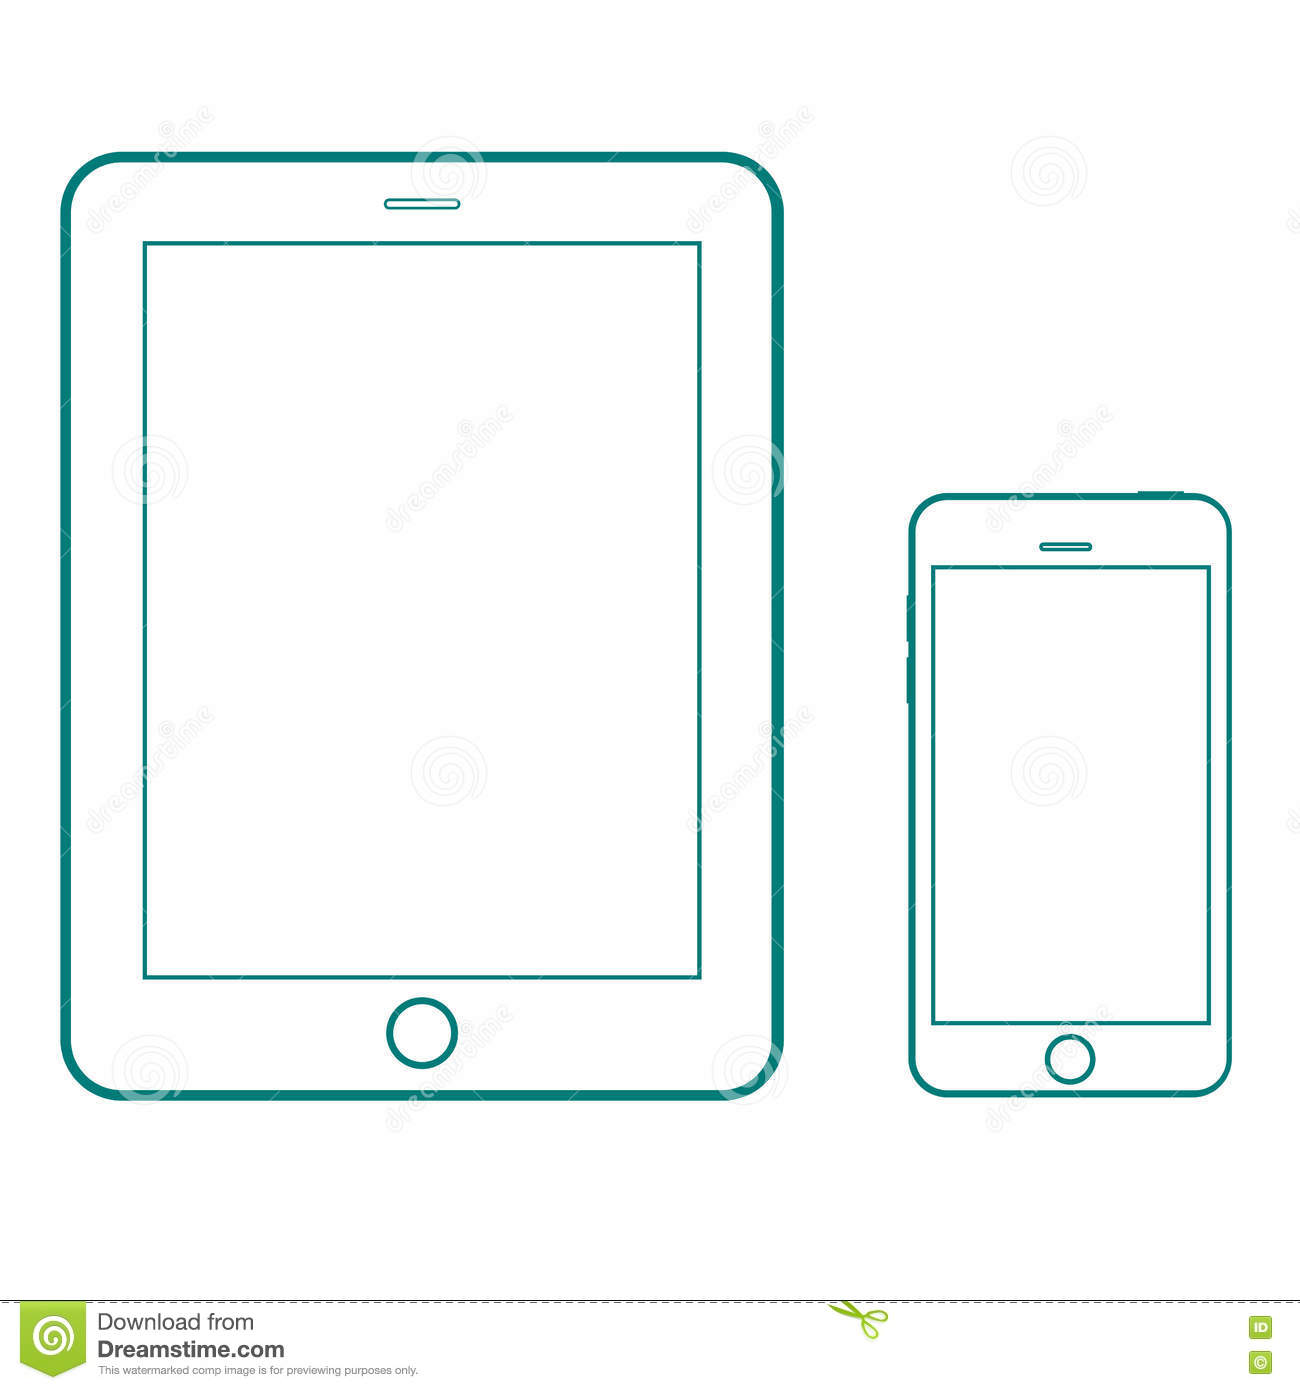 Drawing Lines With Tablet : Outline drawing modern smartphone and tablet set elegant thin